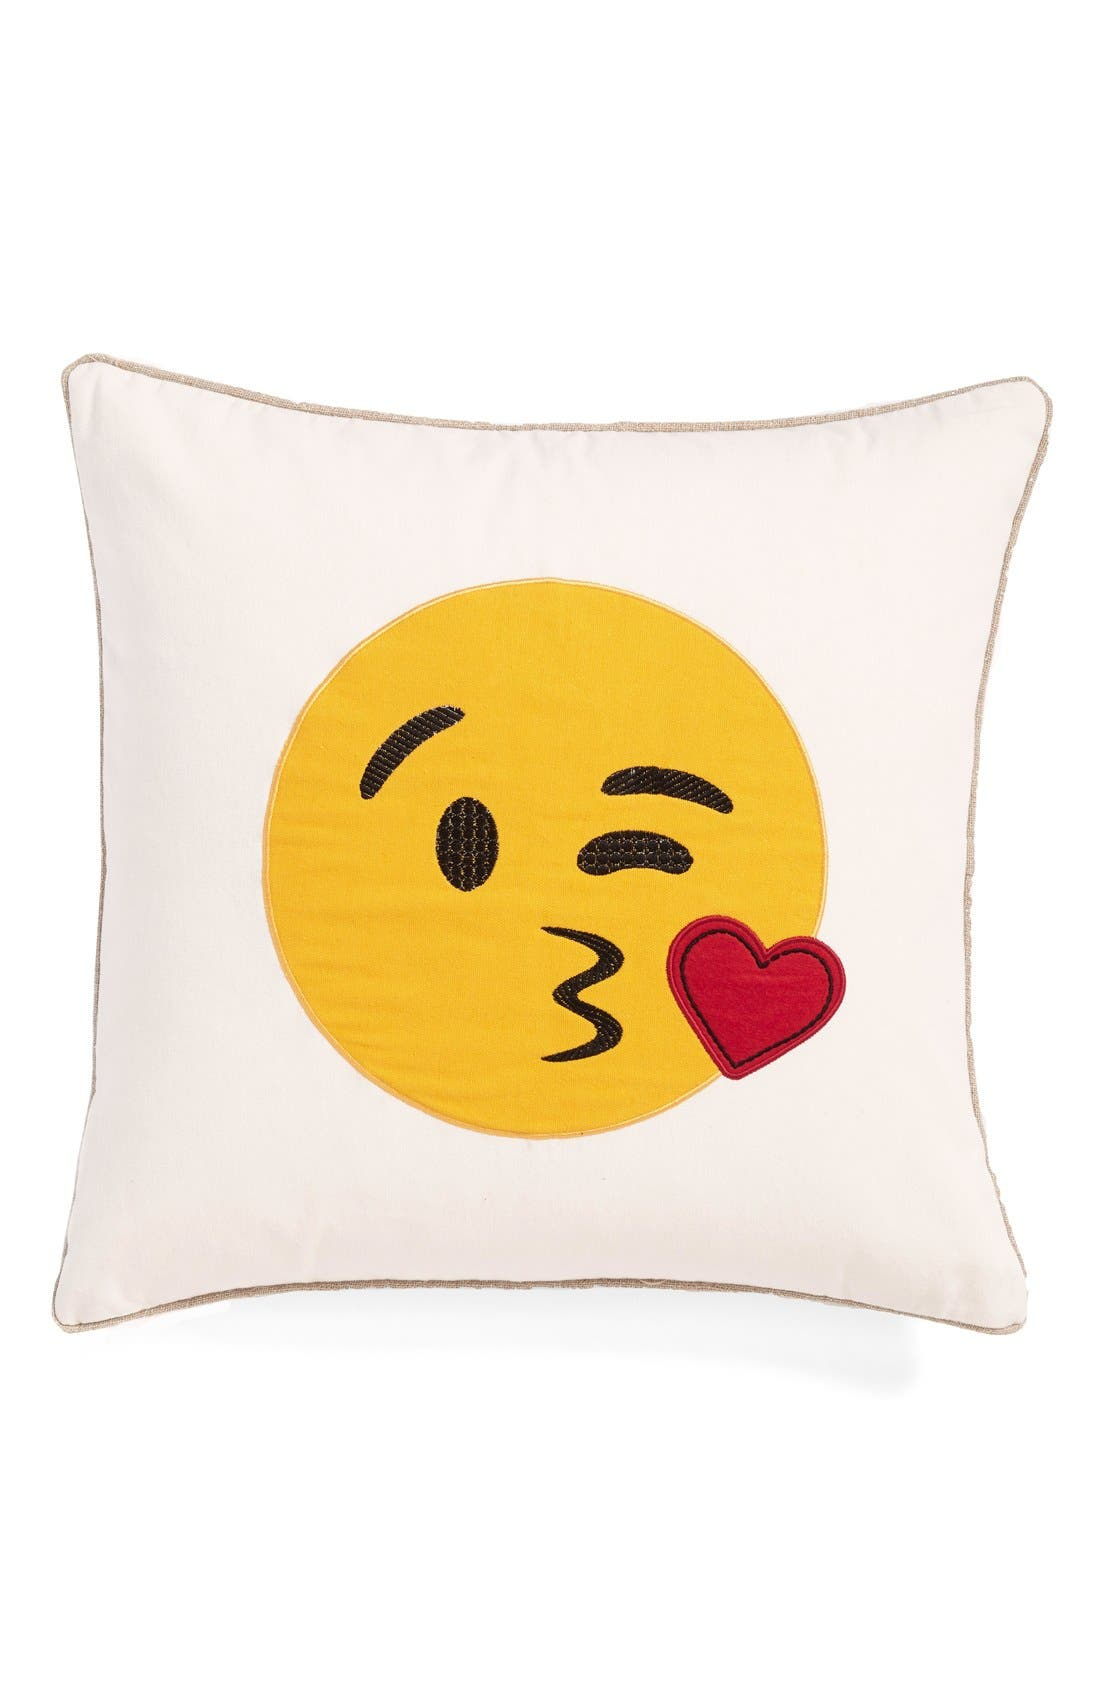 Alternate Image 1 Selected - Levtex 'Blowing Kisses' Pillow